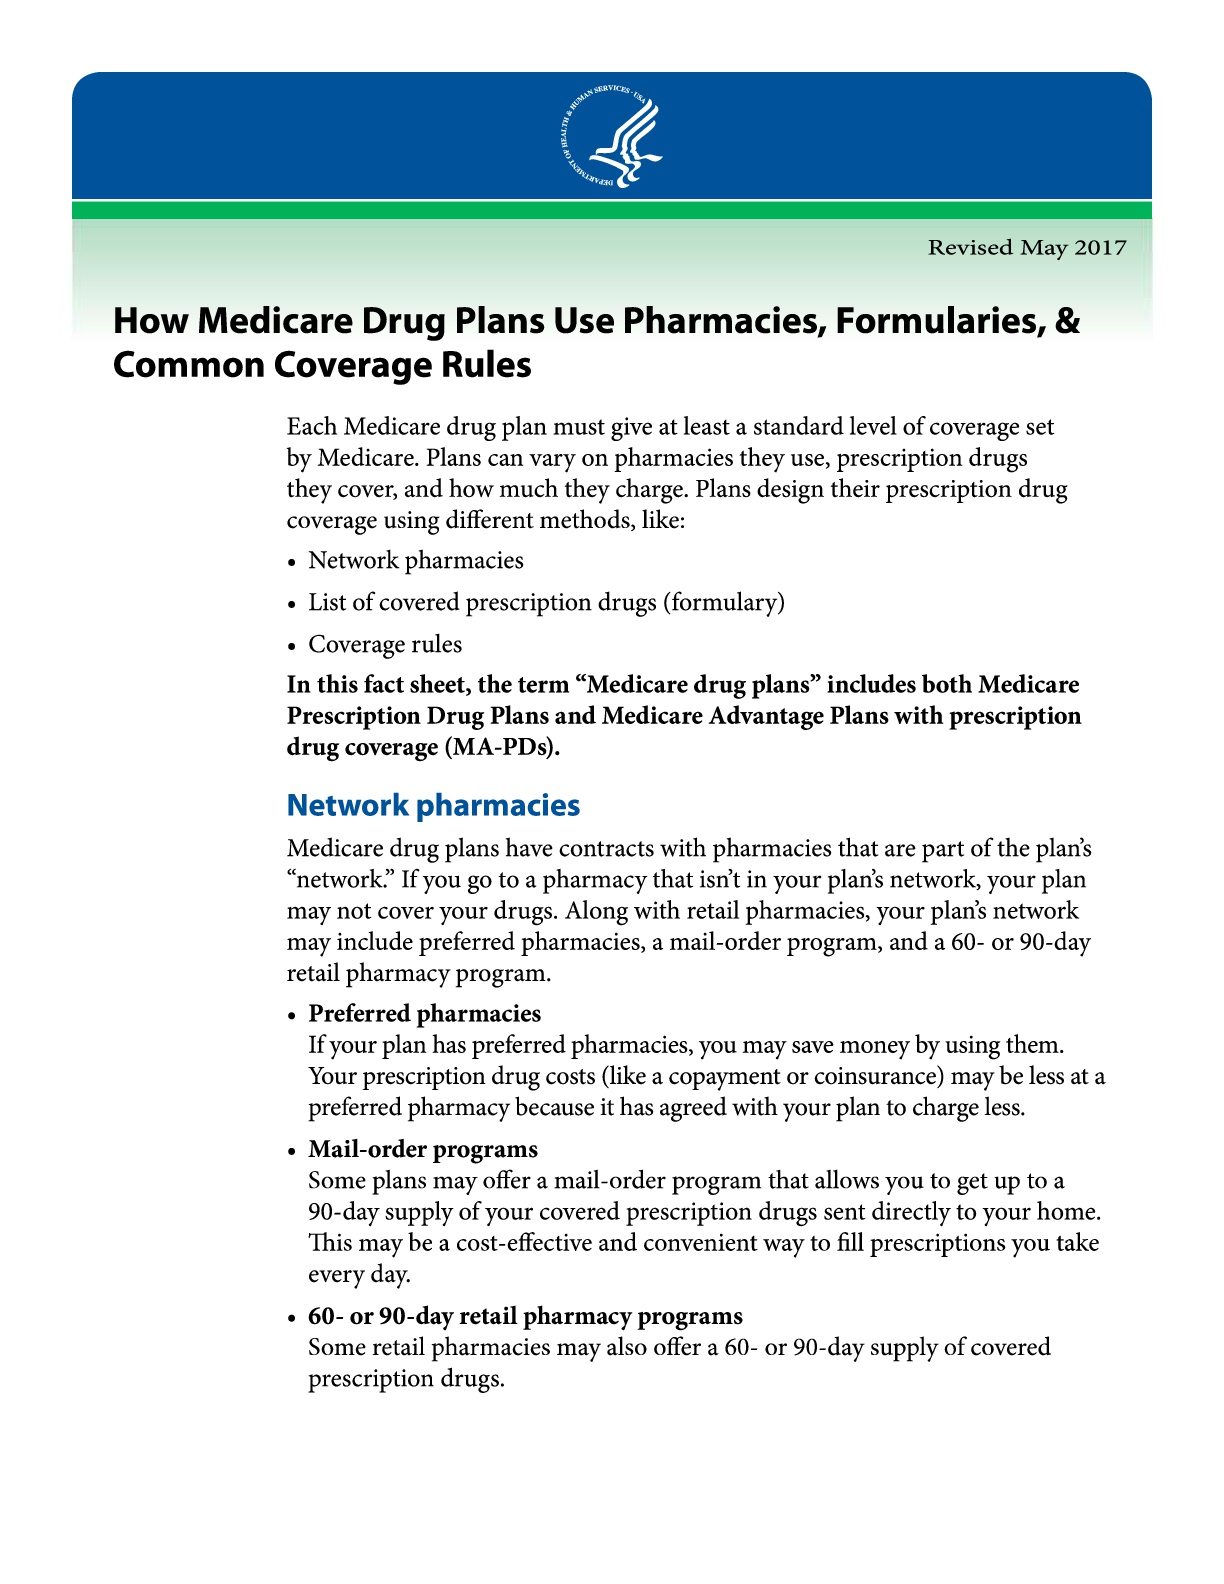 Medicare Fact Sheet